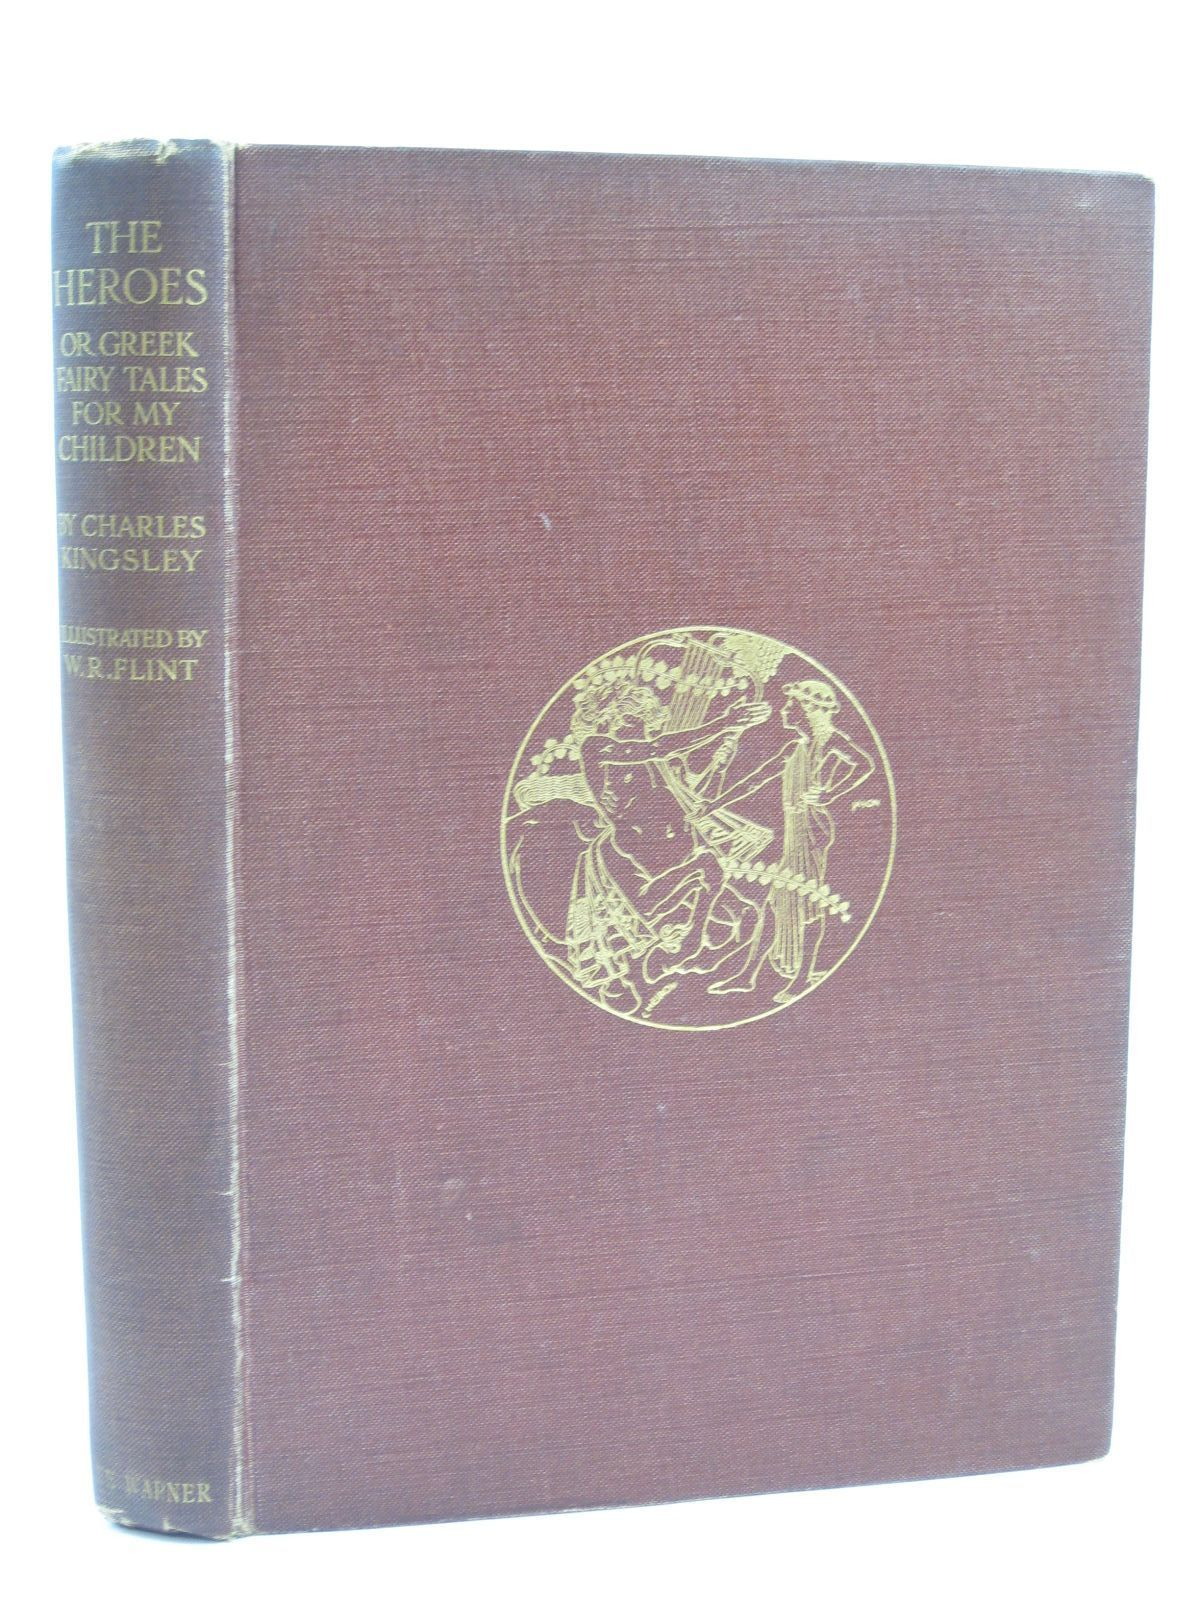 Photo of THE HEROES OR GREEK FAIRY TALES FOR MY CHILDREN written by Kingsley, Charles illustrated by Flint, William Russell published by Philip Lee Warner, The Medici Society (STOCK CODE: 1406358)  for sale by Stella & Rose's Books